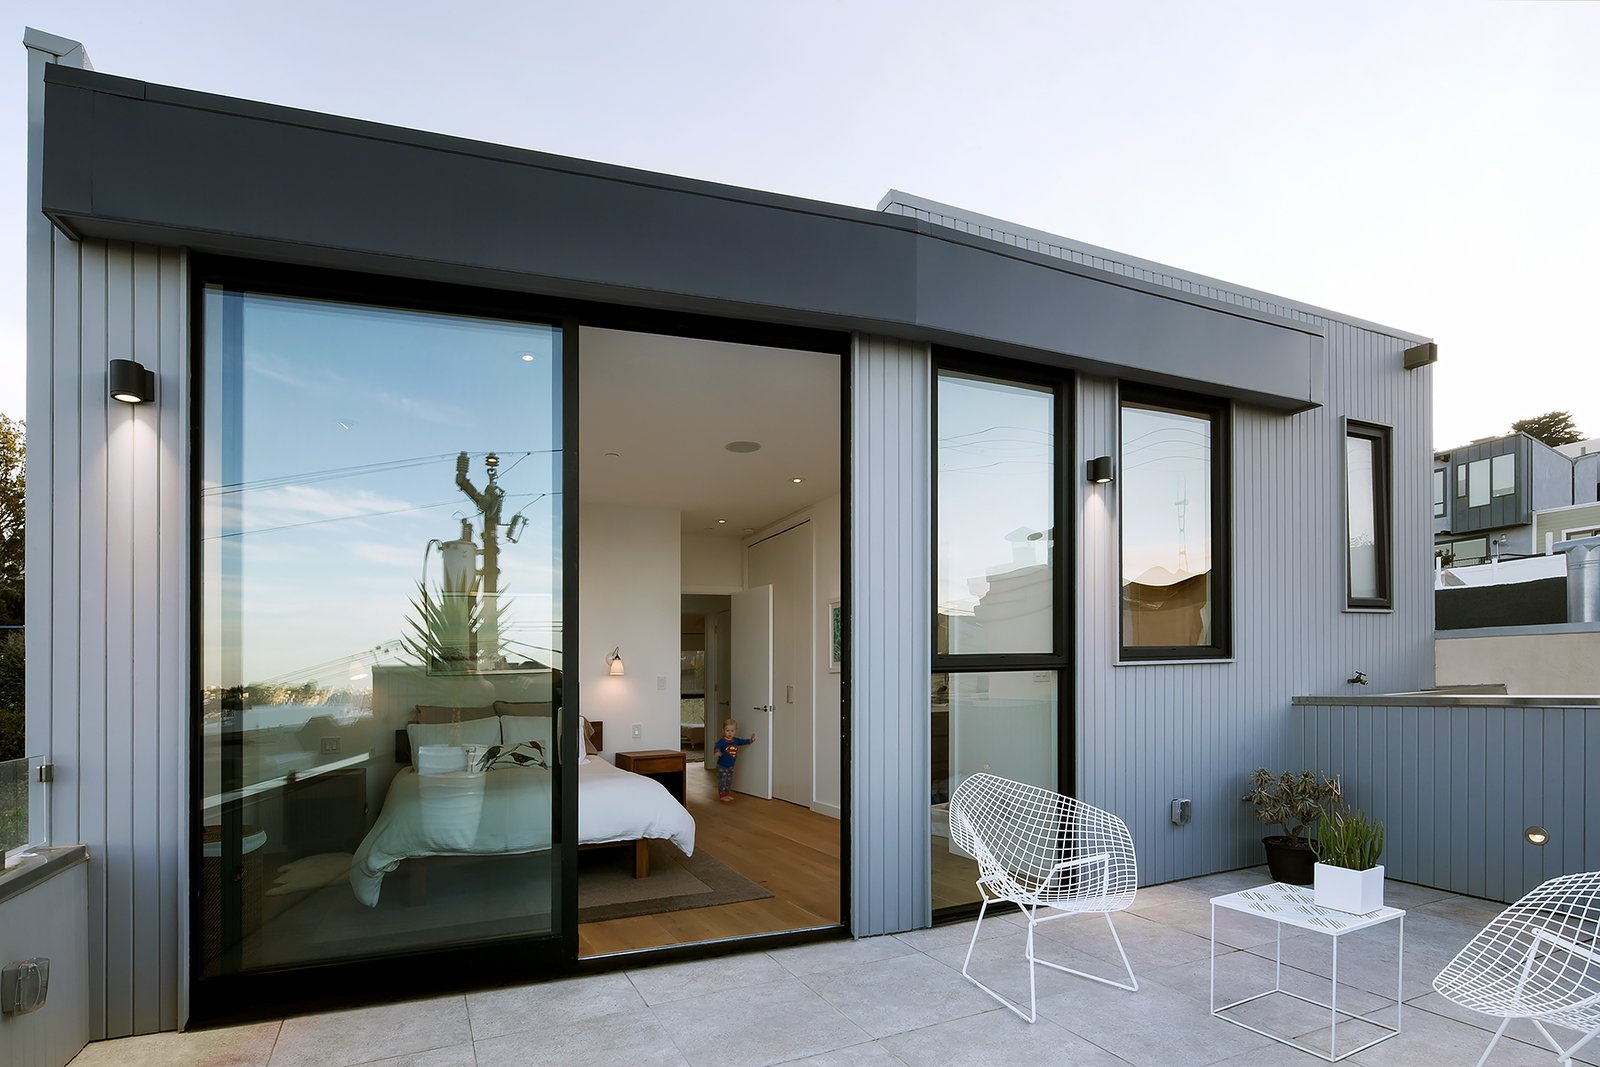 Tagged: Outdoor, Small Patio, Porch, Deck, and Concrete Patio, Porch, Deck.  Best Photos from Revamping the San Francisco Vernacular, Modern Design and Technology Serves A Busy Family